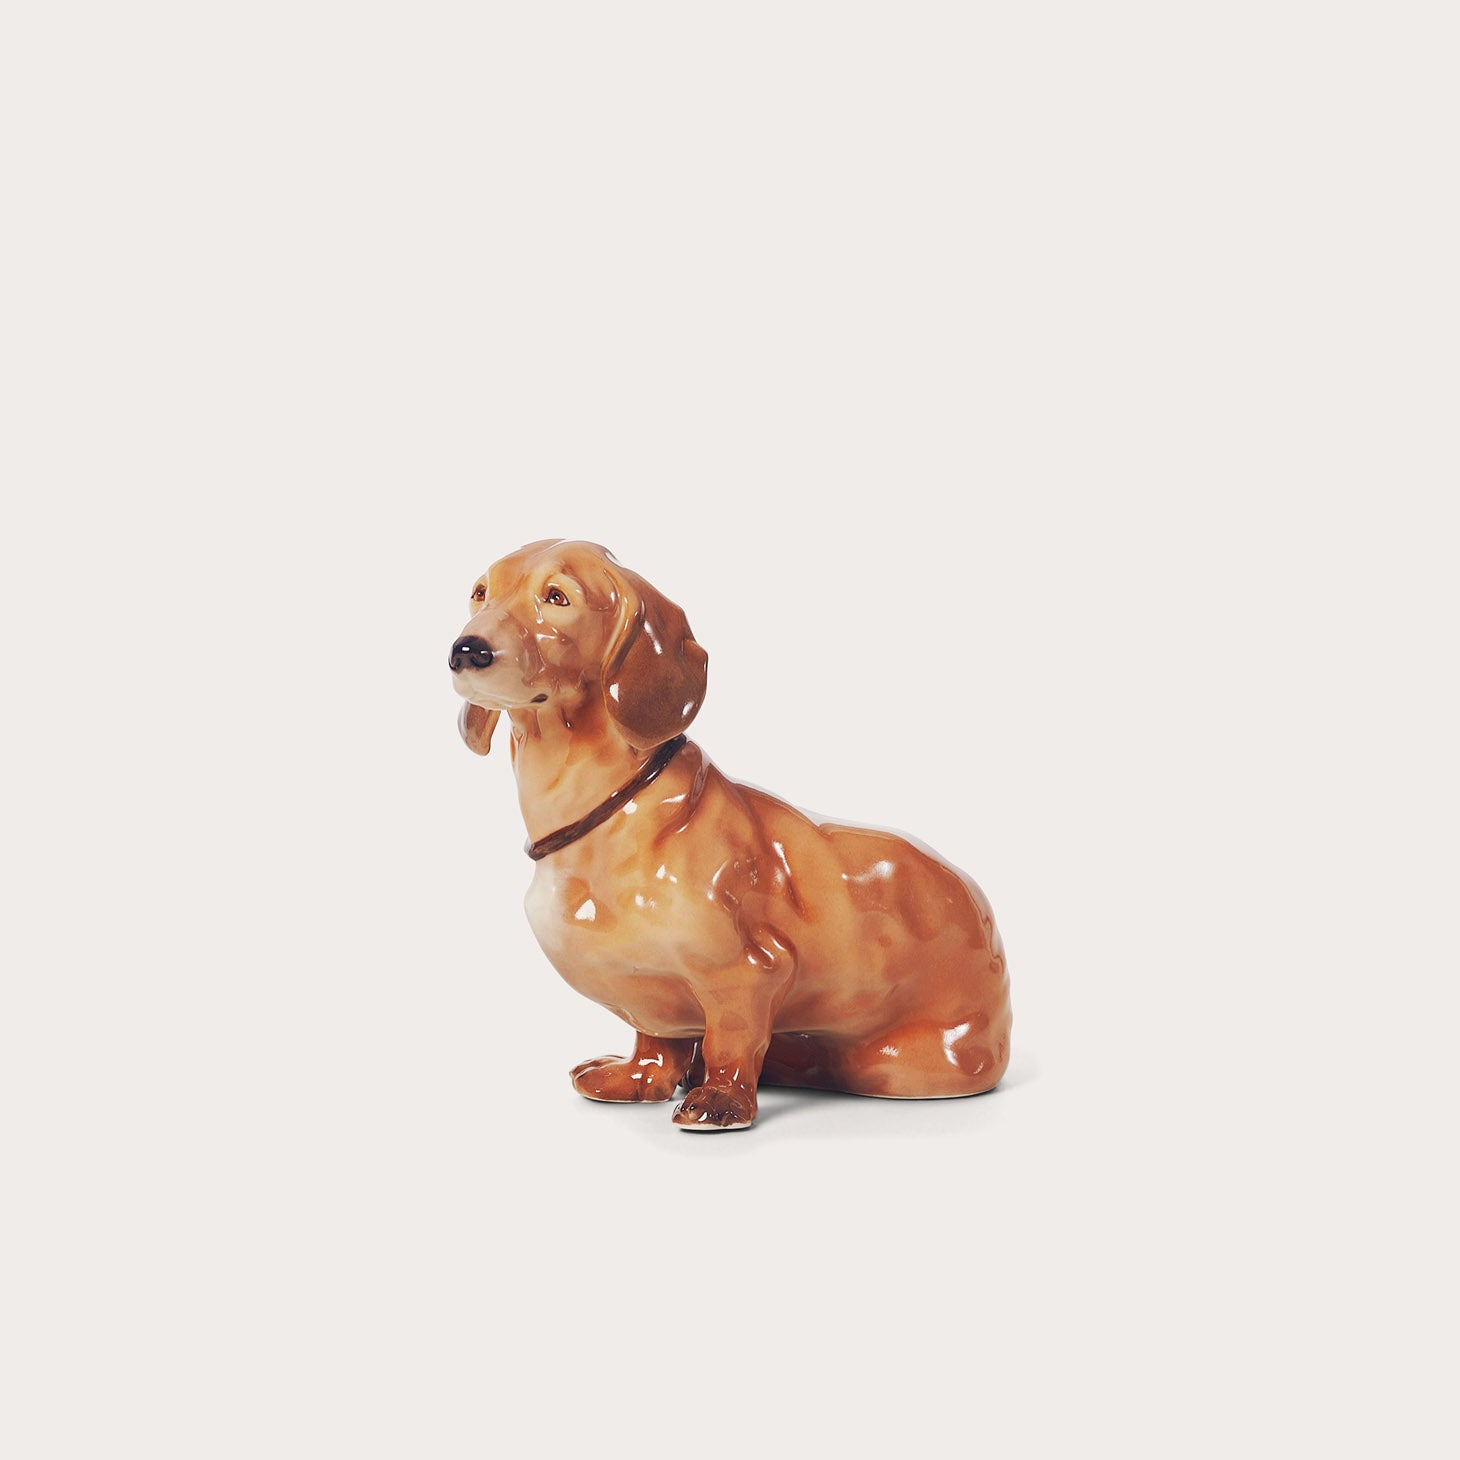 Dogs-Dachshund Accessories Nymphenburg Designer Furniture Sku: 542-100-10108